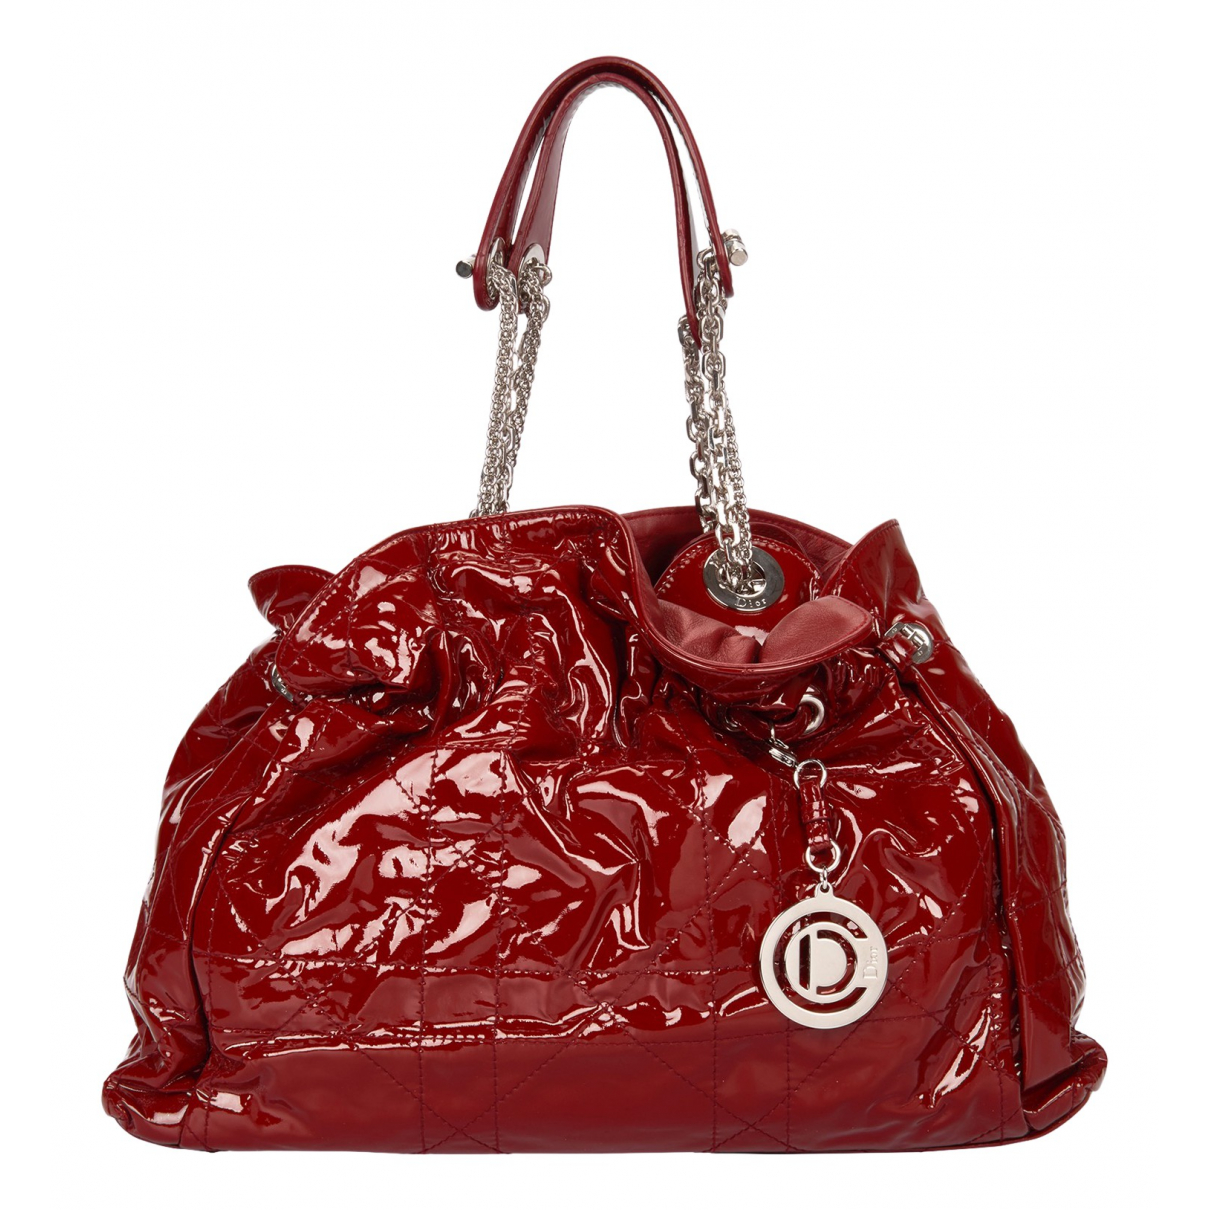 Dior N Red Patent leather handbag for Women N